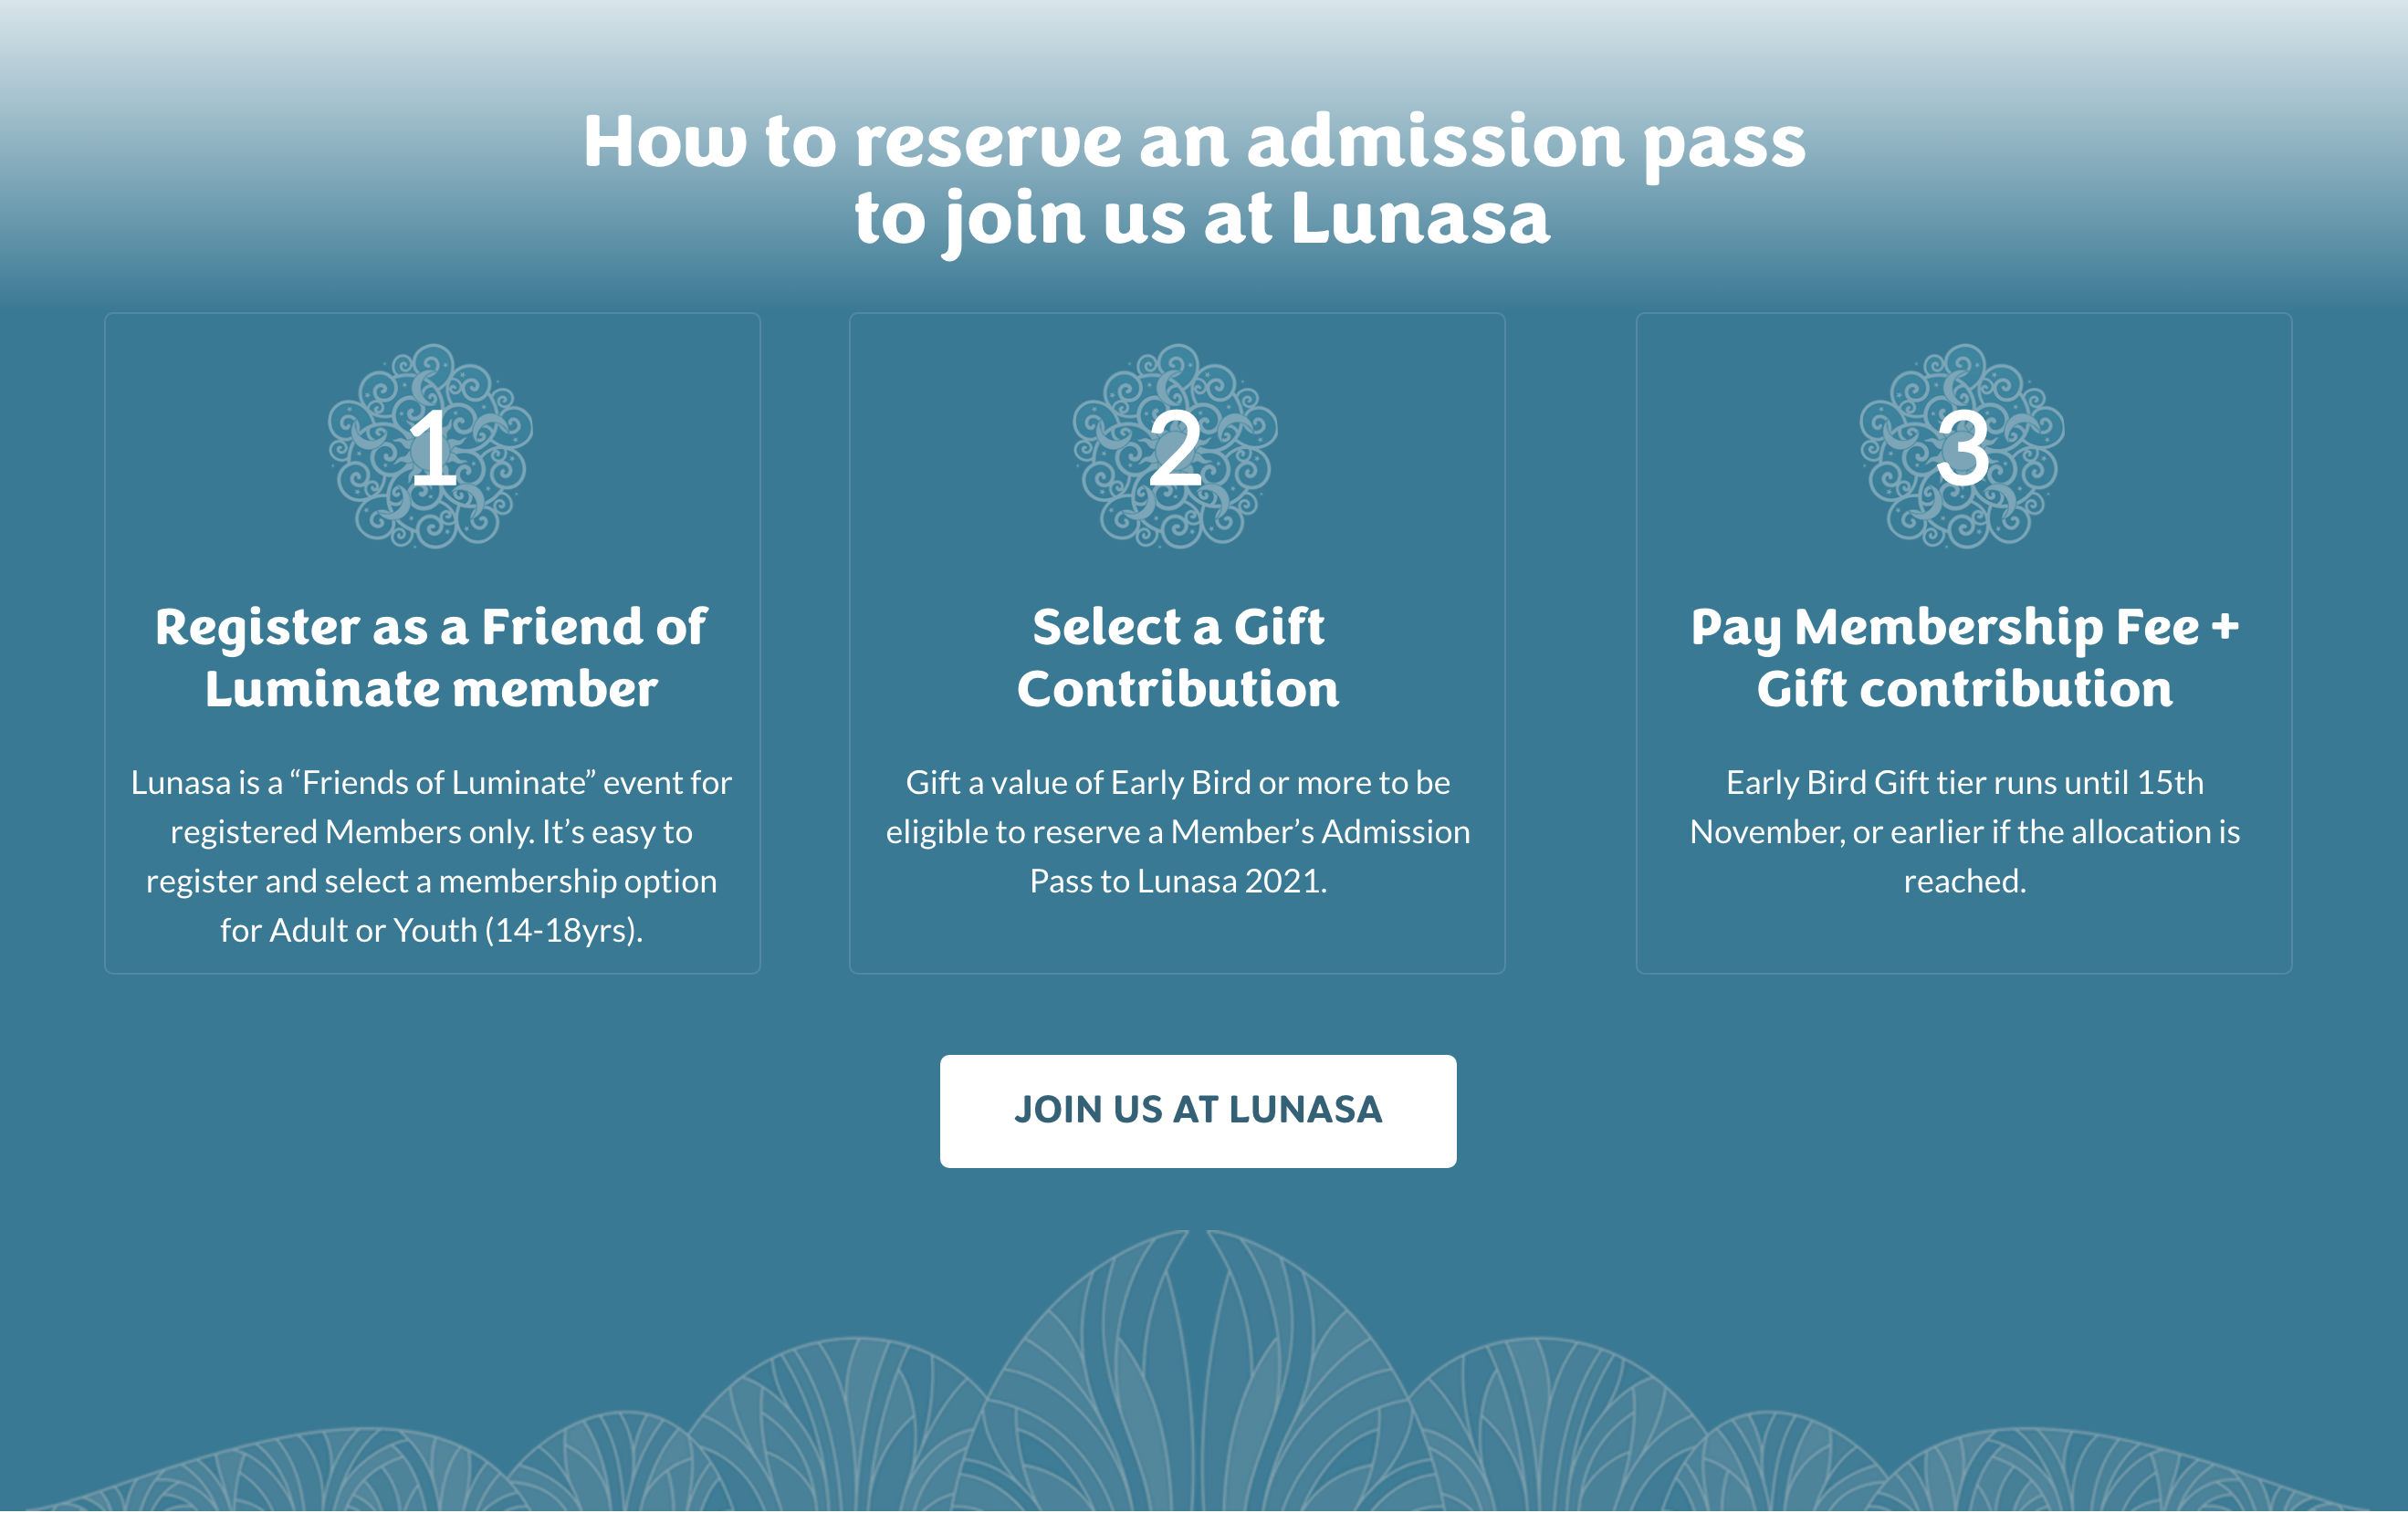 How to reserve an Admission Pass to Lunasa